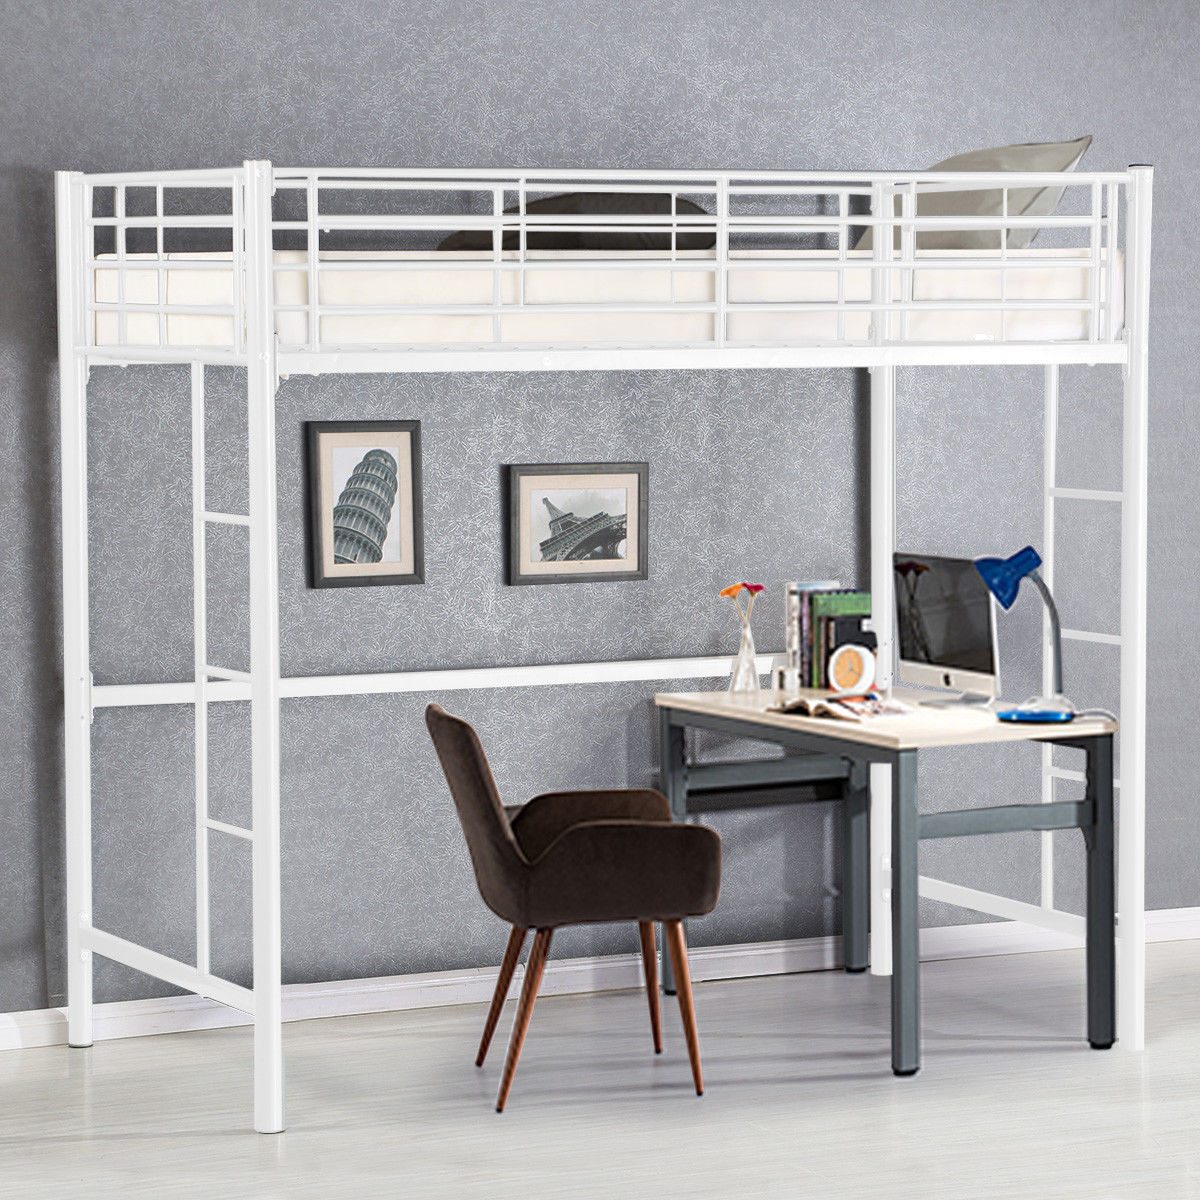 kids bunk bed for girls. Product Image Gymax Twin Loft Bed Metal Bunk Ladder Beds Boys Girls Teens  Kids Bedroom Dorm White Kids Bunk Bed For Girls L